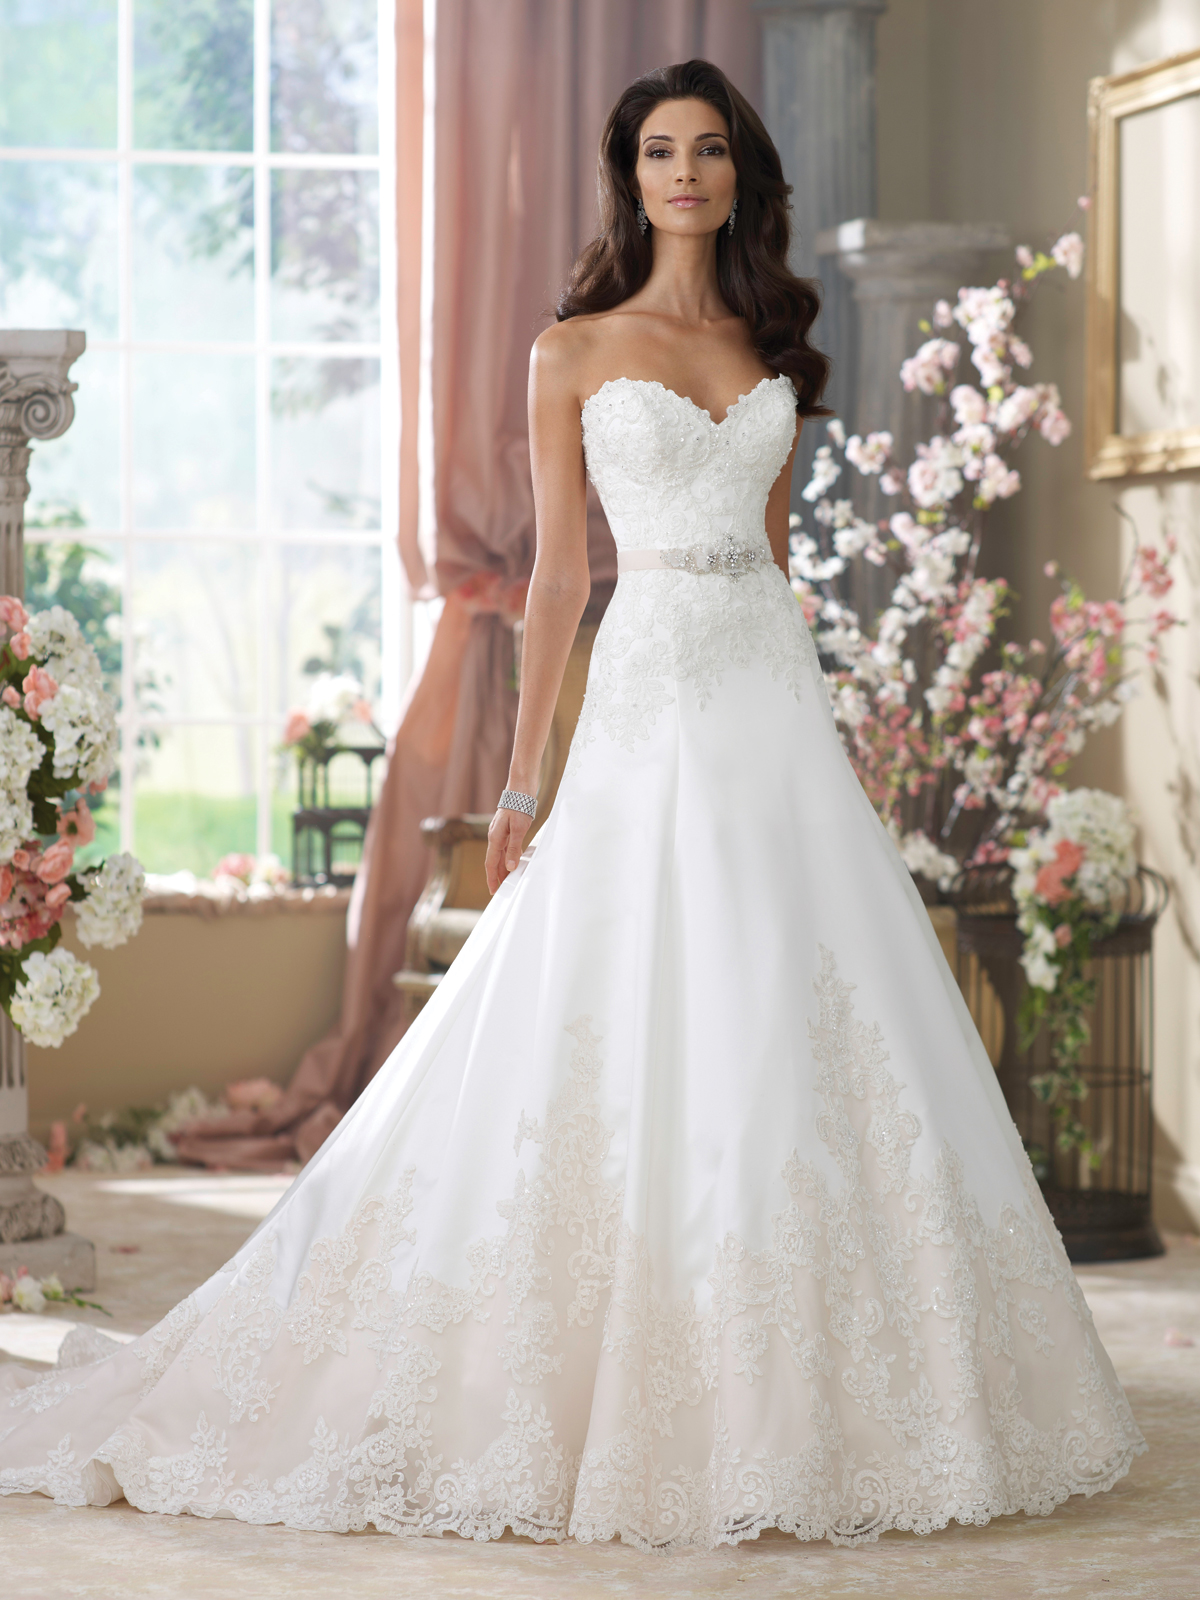 Victoria Lane Brides - Vernon Bridal Wedding Dresses